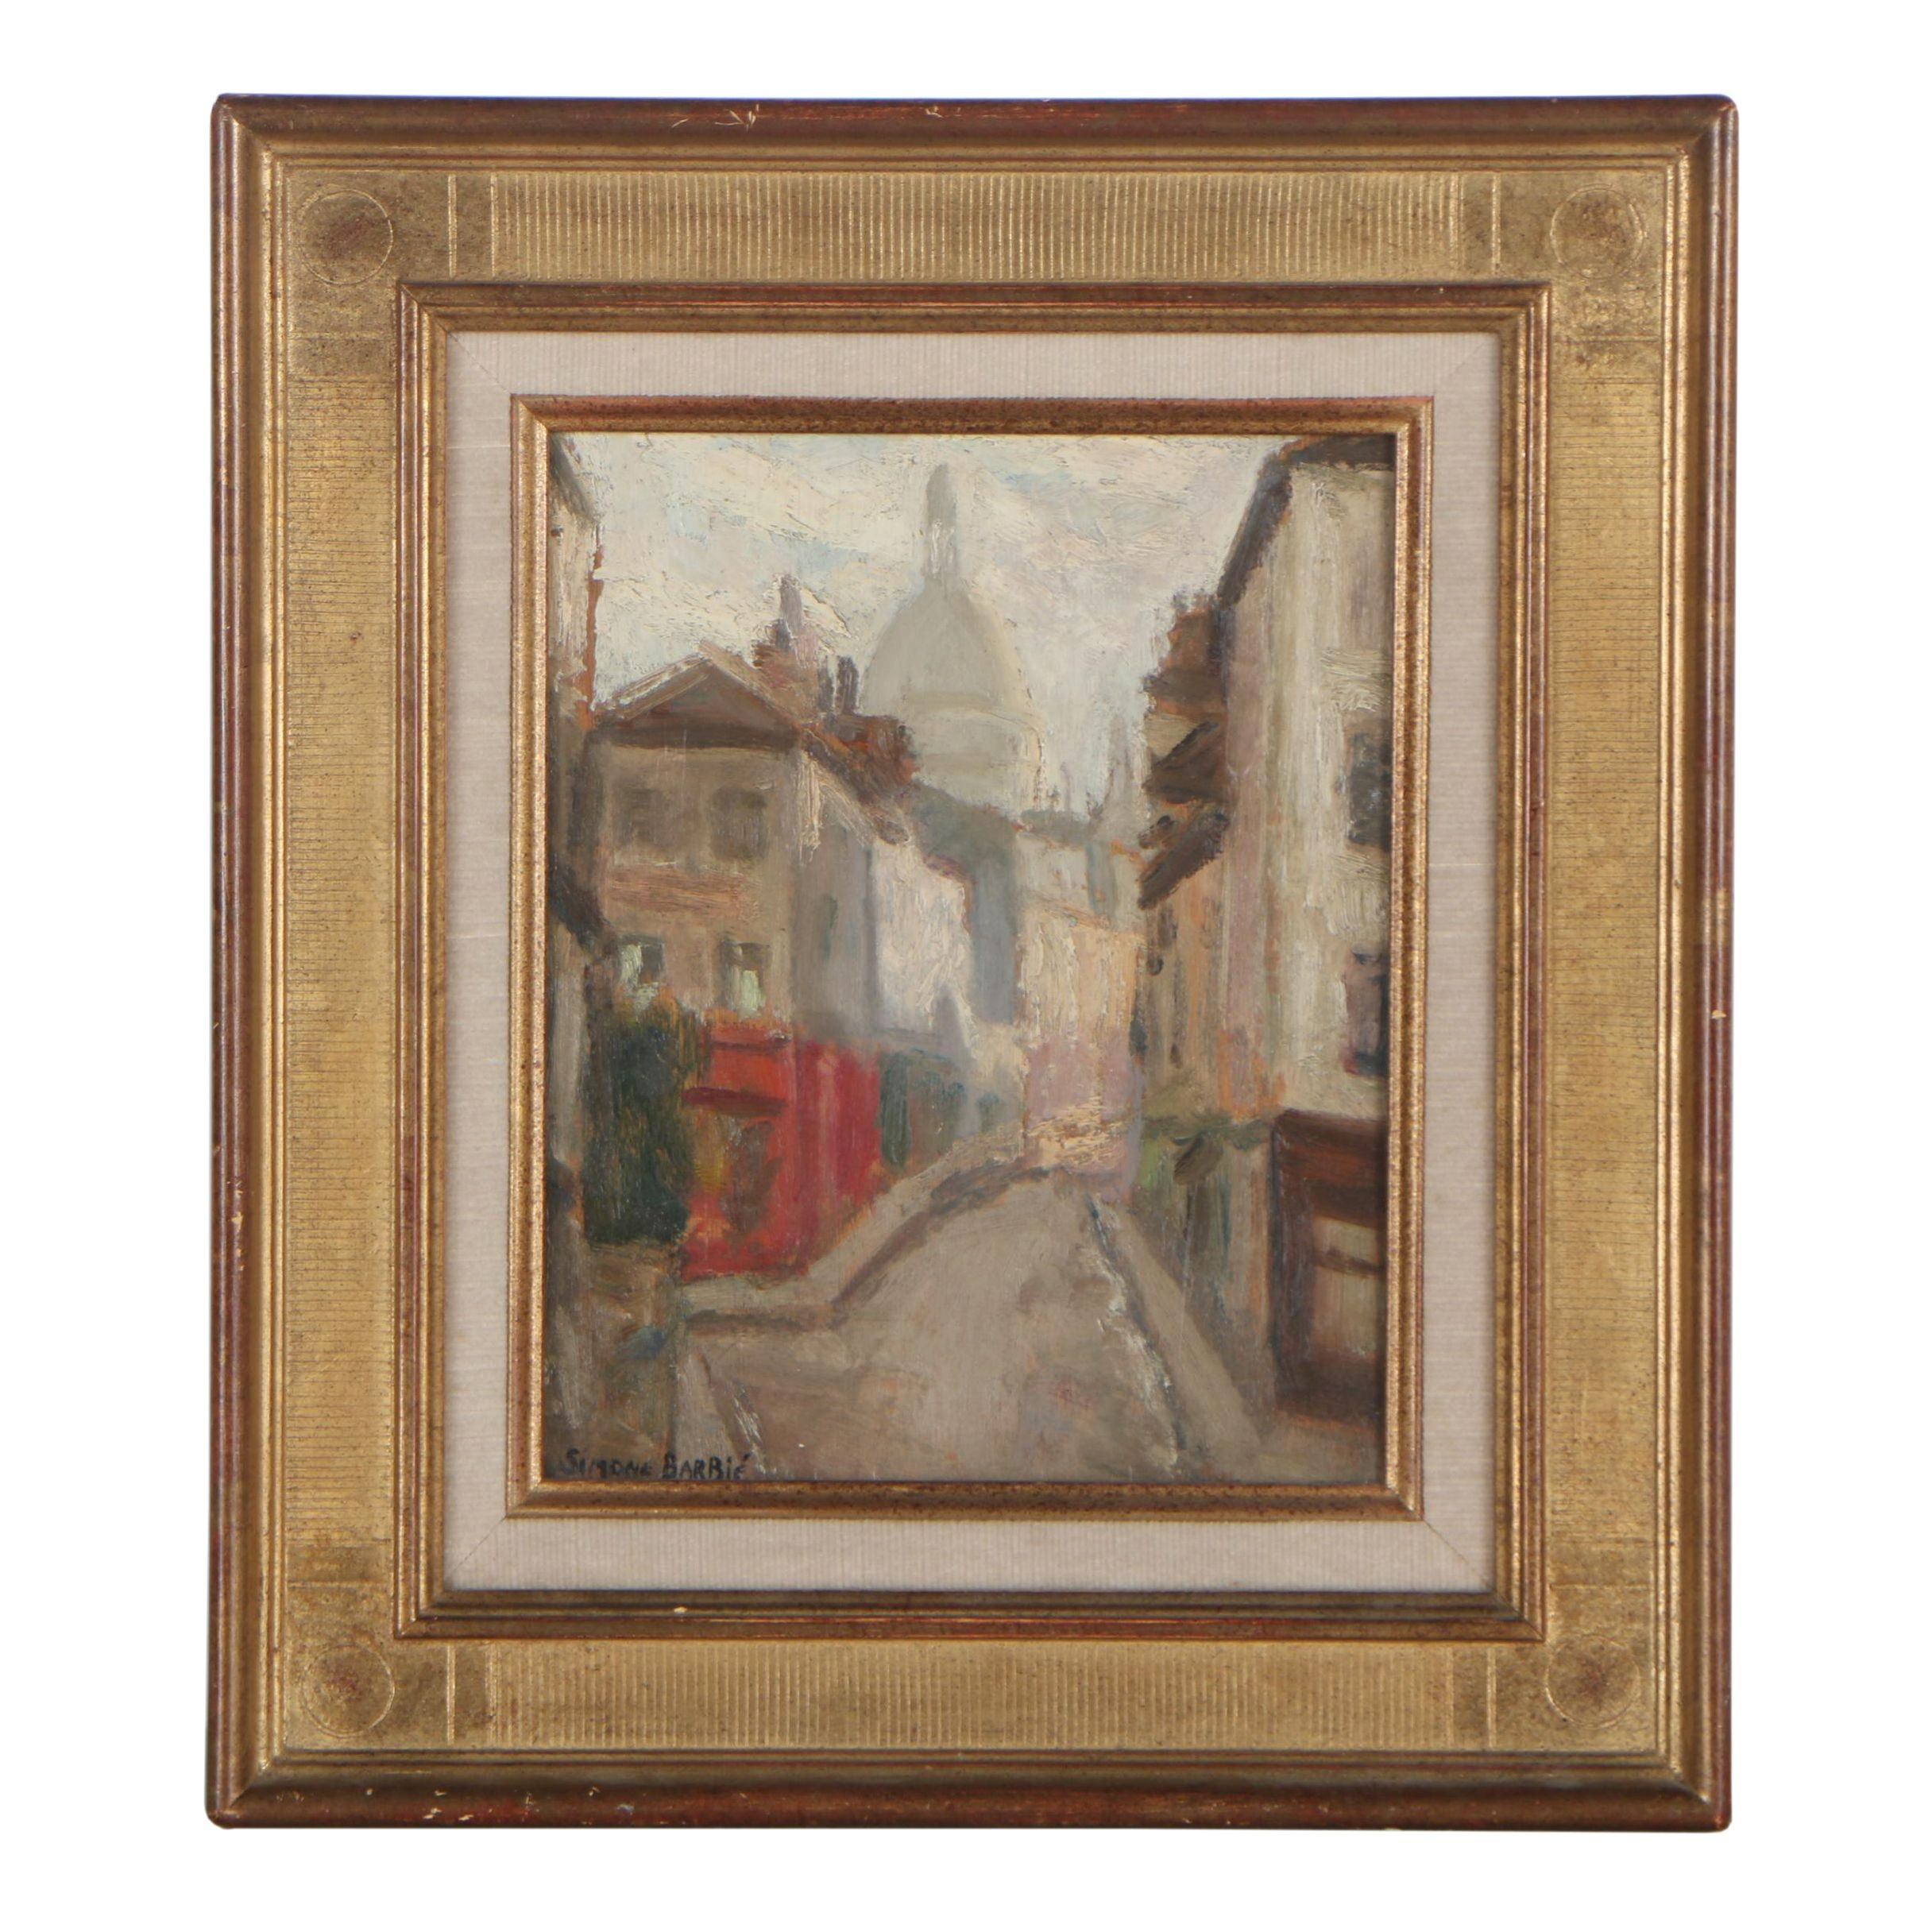 "Simone Barbié Oil Painting ""Street in Montmartre"""